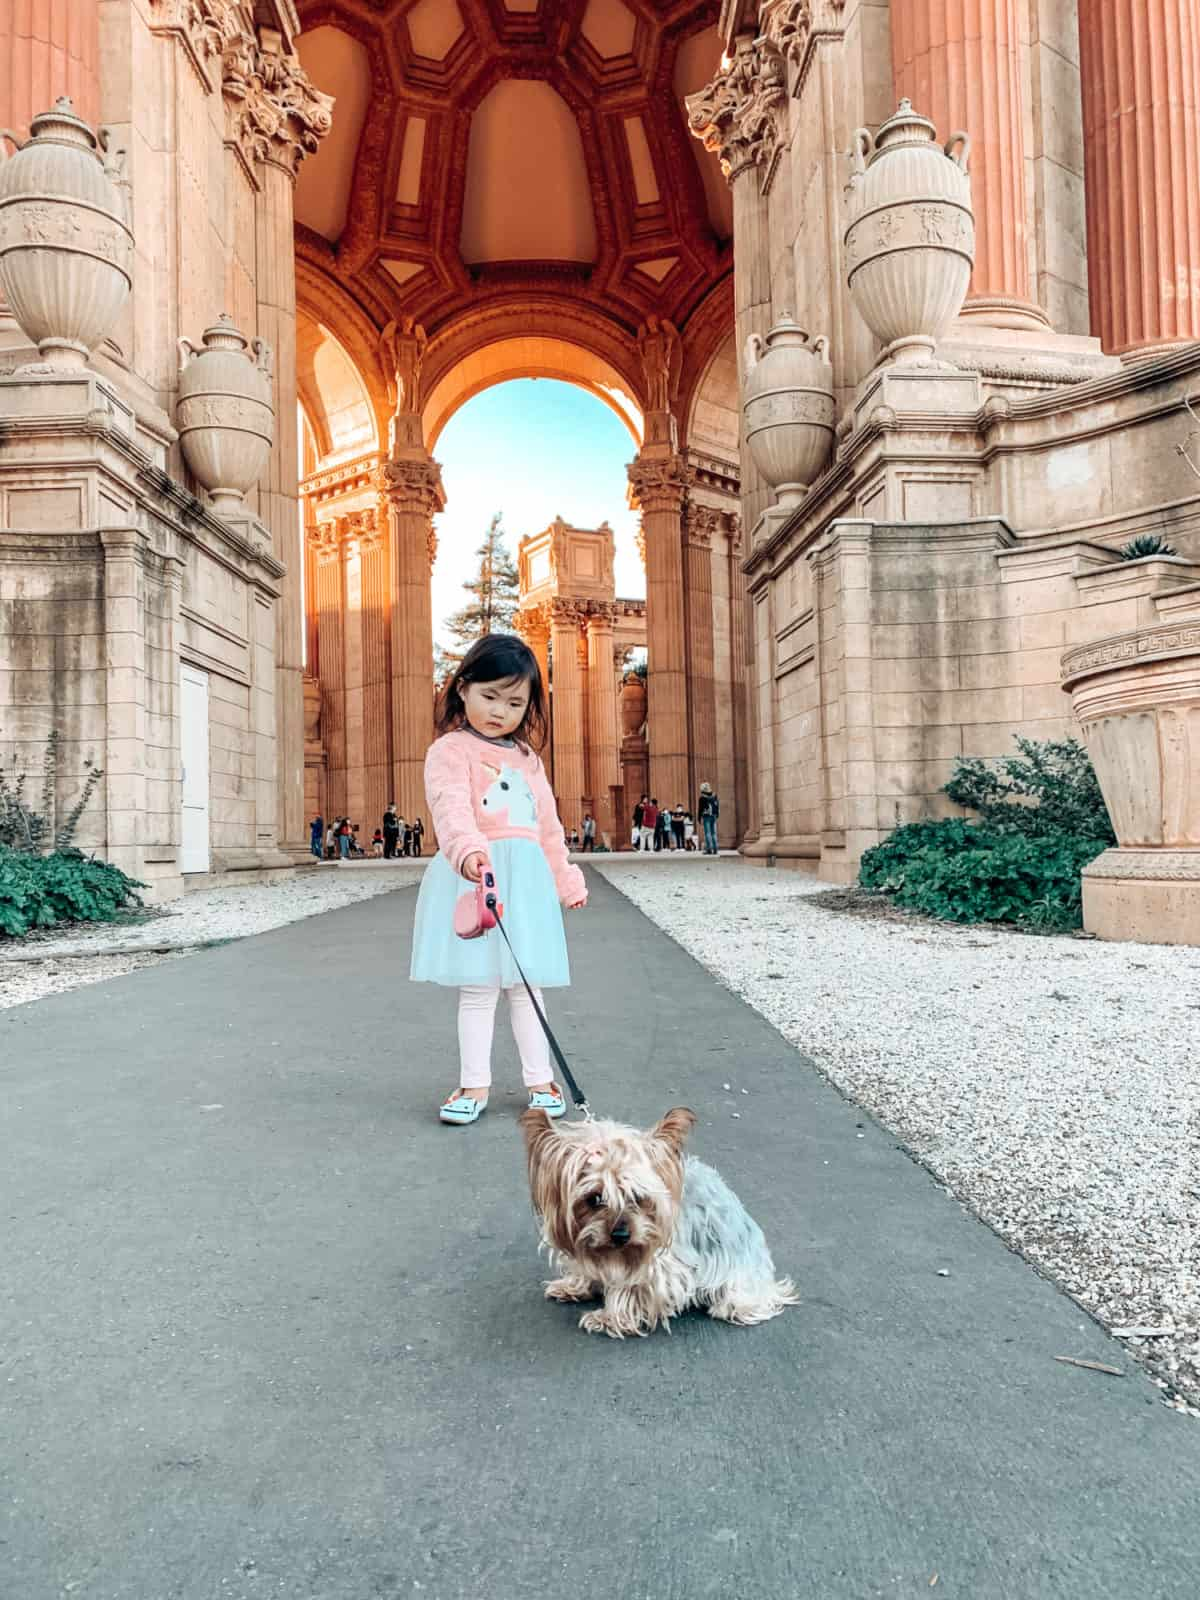 Little girl in a dress with a Yorkie dog on a leash standing in an archway